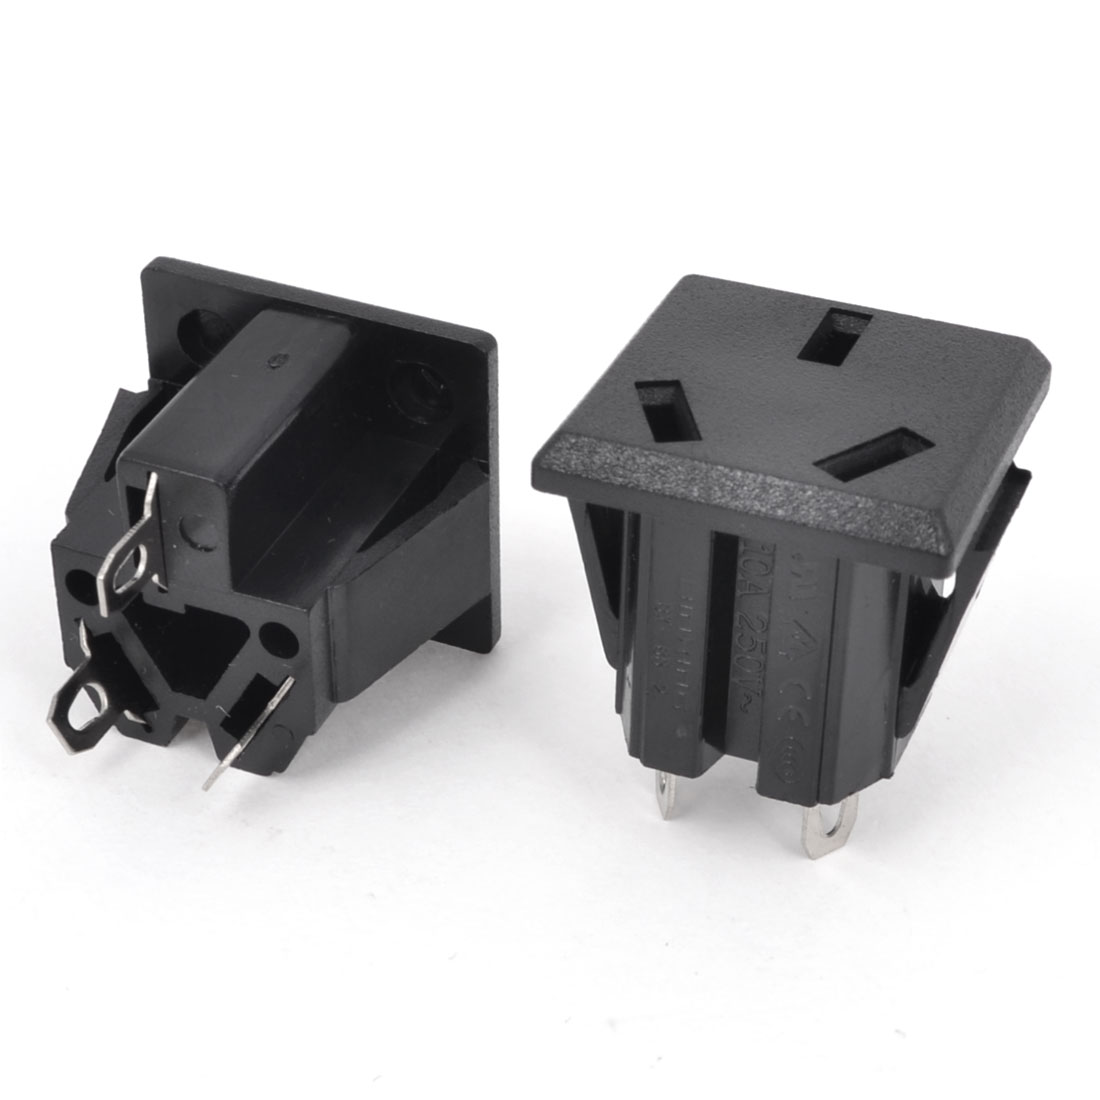 2 Pcs Square Shaped AU 3 Terminals Power Socket Adapter AC 250V 10A